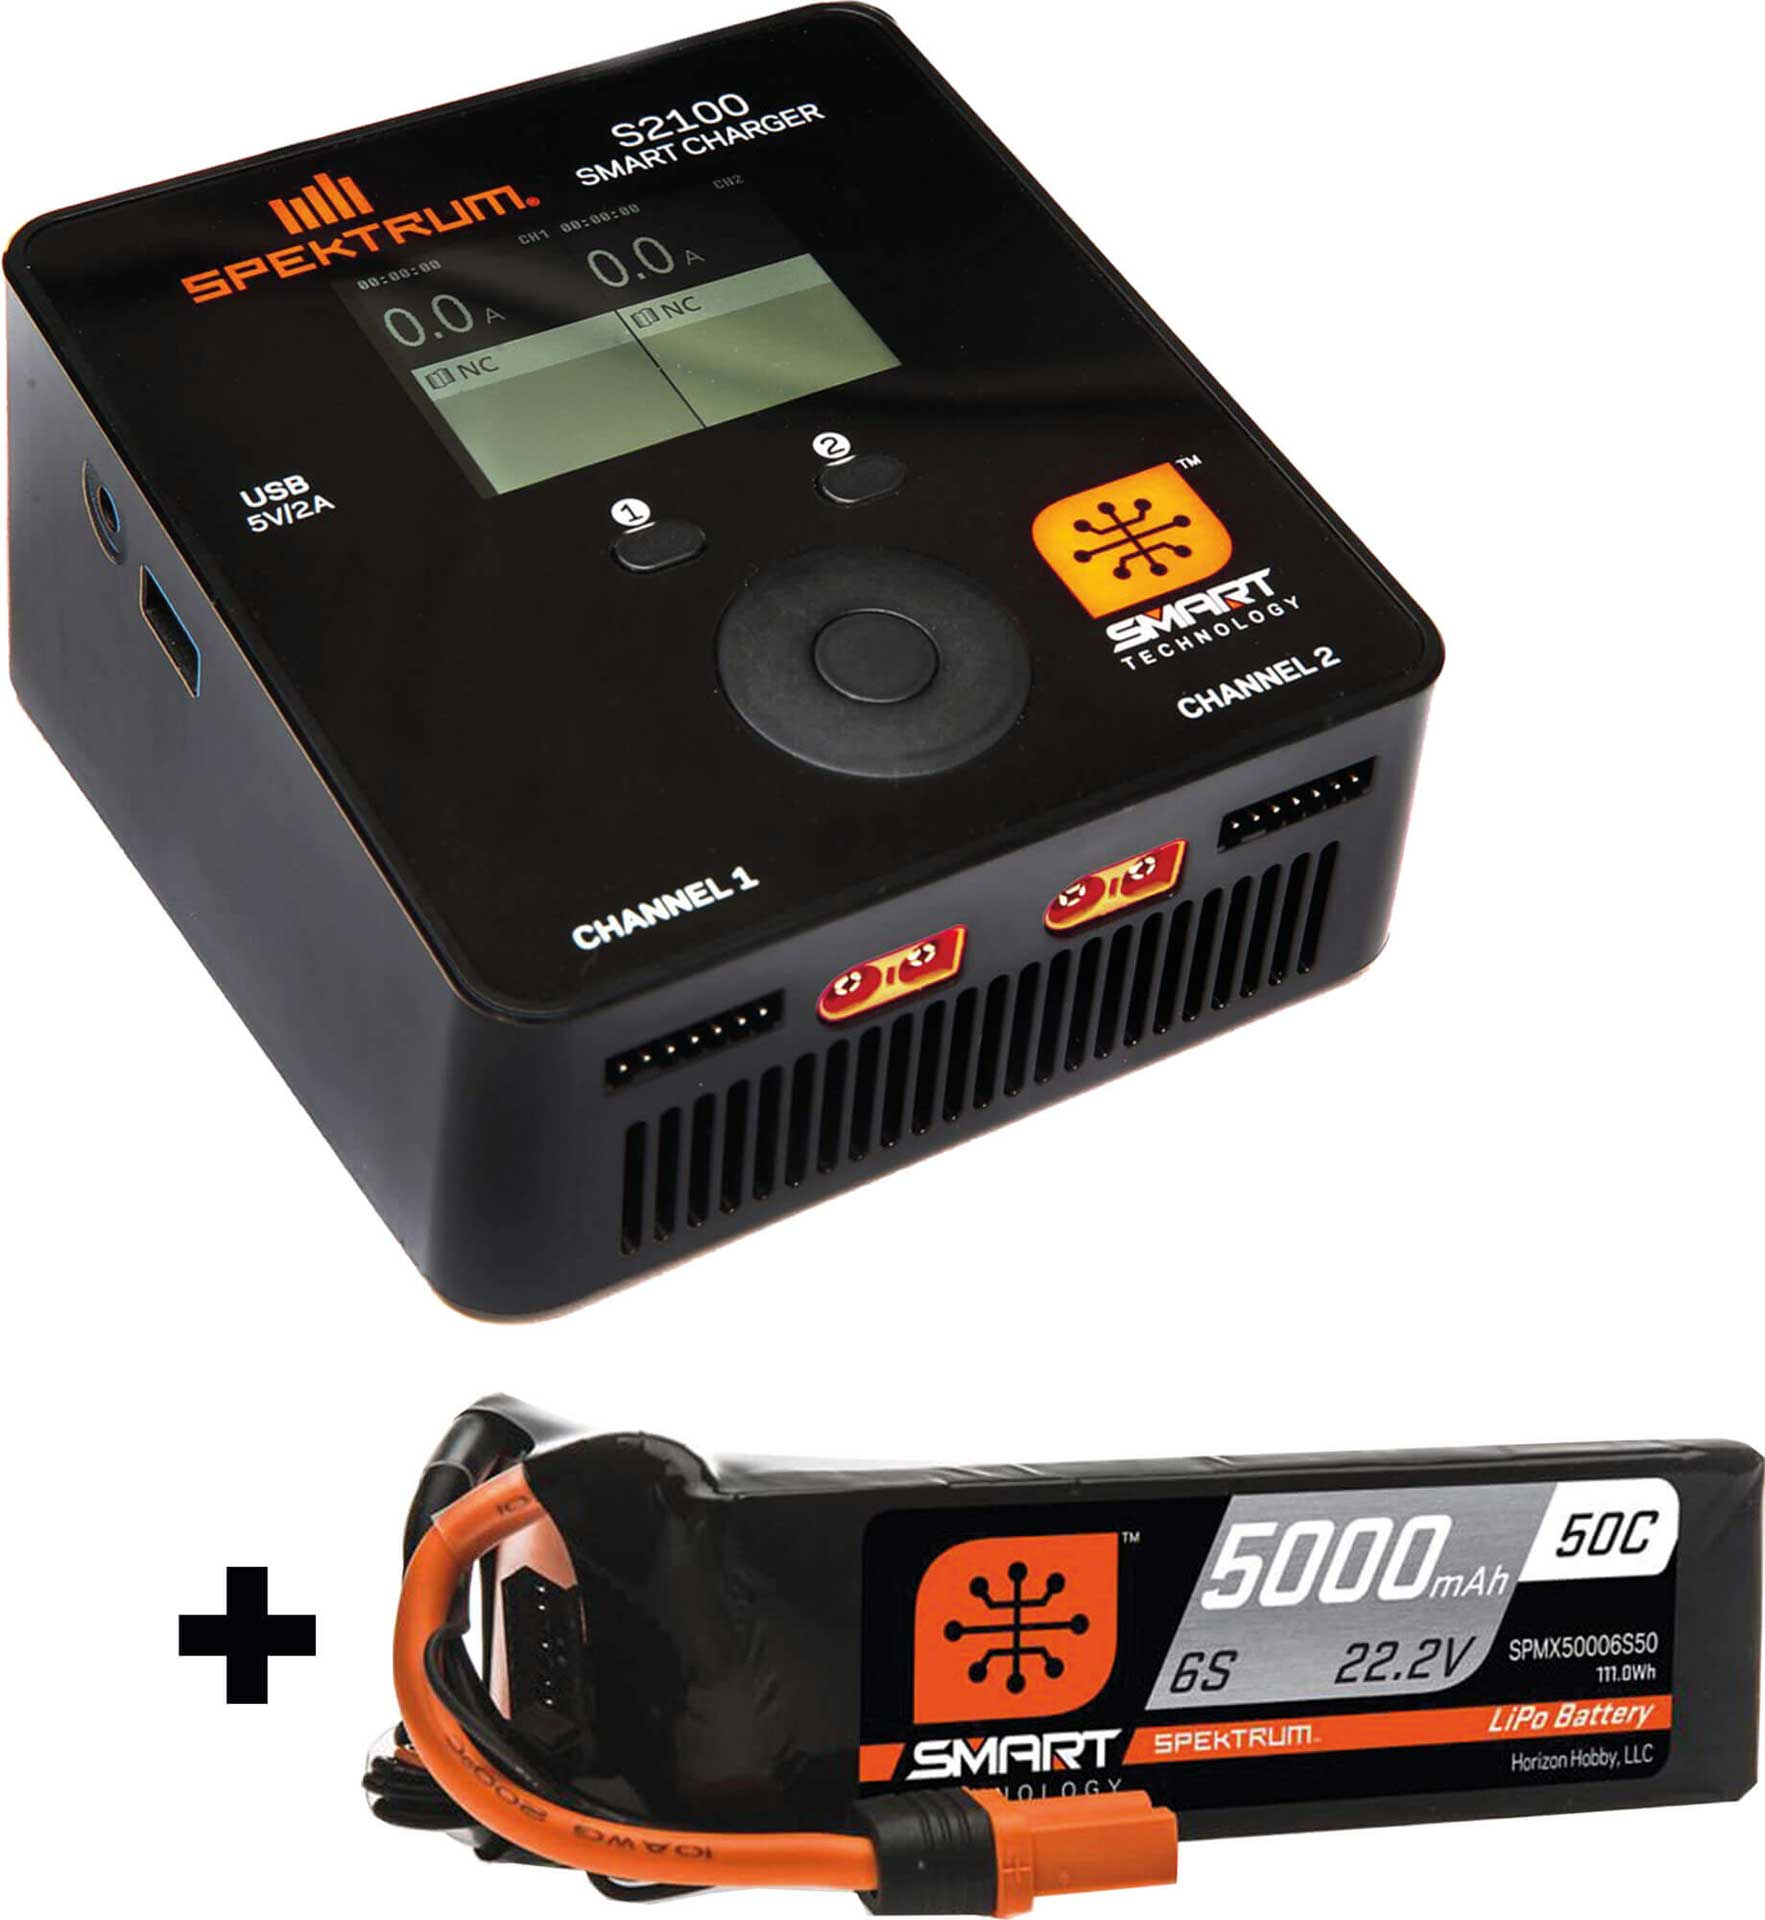 SPEKTRUM Smart S2100 AC Charger 2x100W Aktion SVR m it 1Stk. Smart Lipo 5000mAh 6S 22,2V 50c